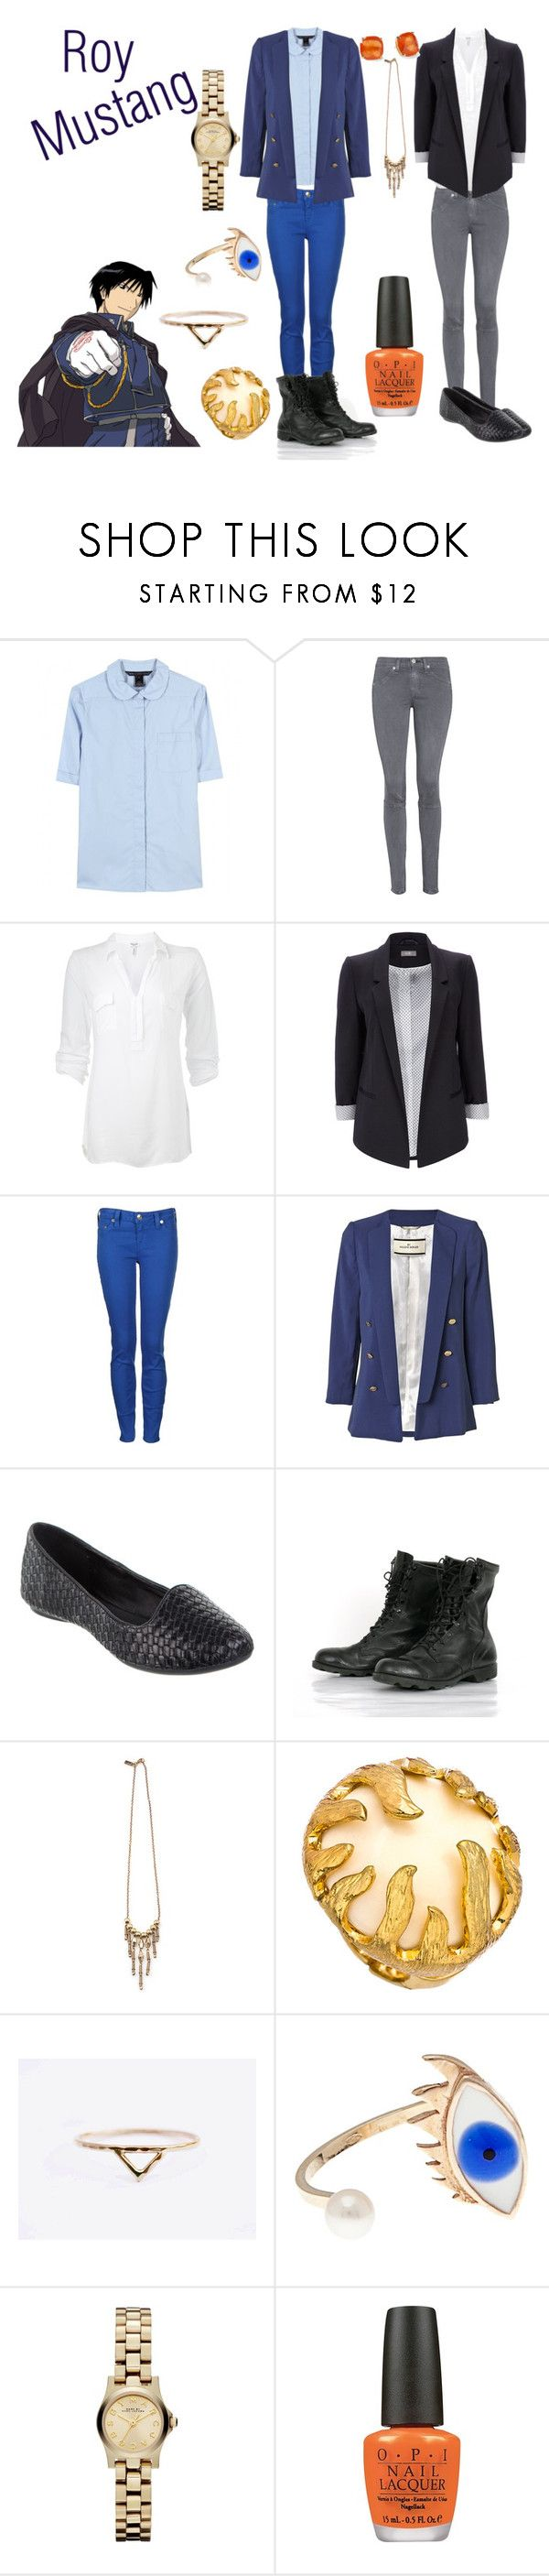 """Roy Mustang"" by casualanime ❤ liked on Polyvore featuring Marc by Marc Jacobs, rag & bone/JEAN, Splendid, Wallis, True Religion, By Malene Birger, SPURR, Kate Spade, Vanessa Mooney and Blu Bijoux"